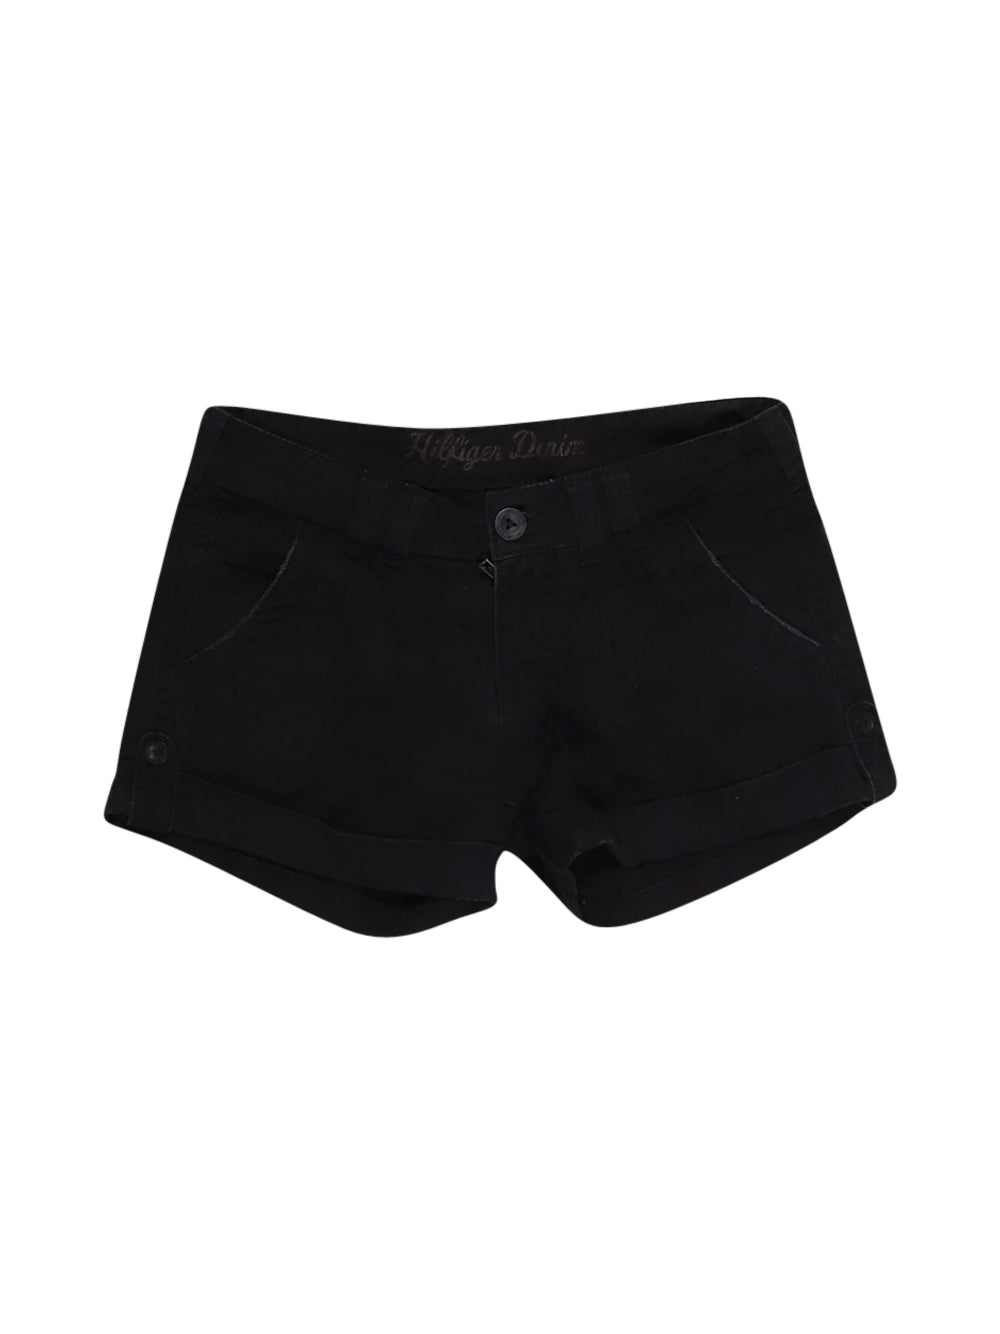 Front photo of Preloved Tommy Hilfiger Black Woman's shorts - size 12/L